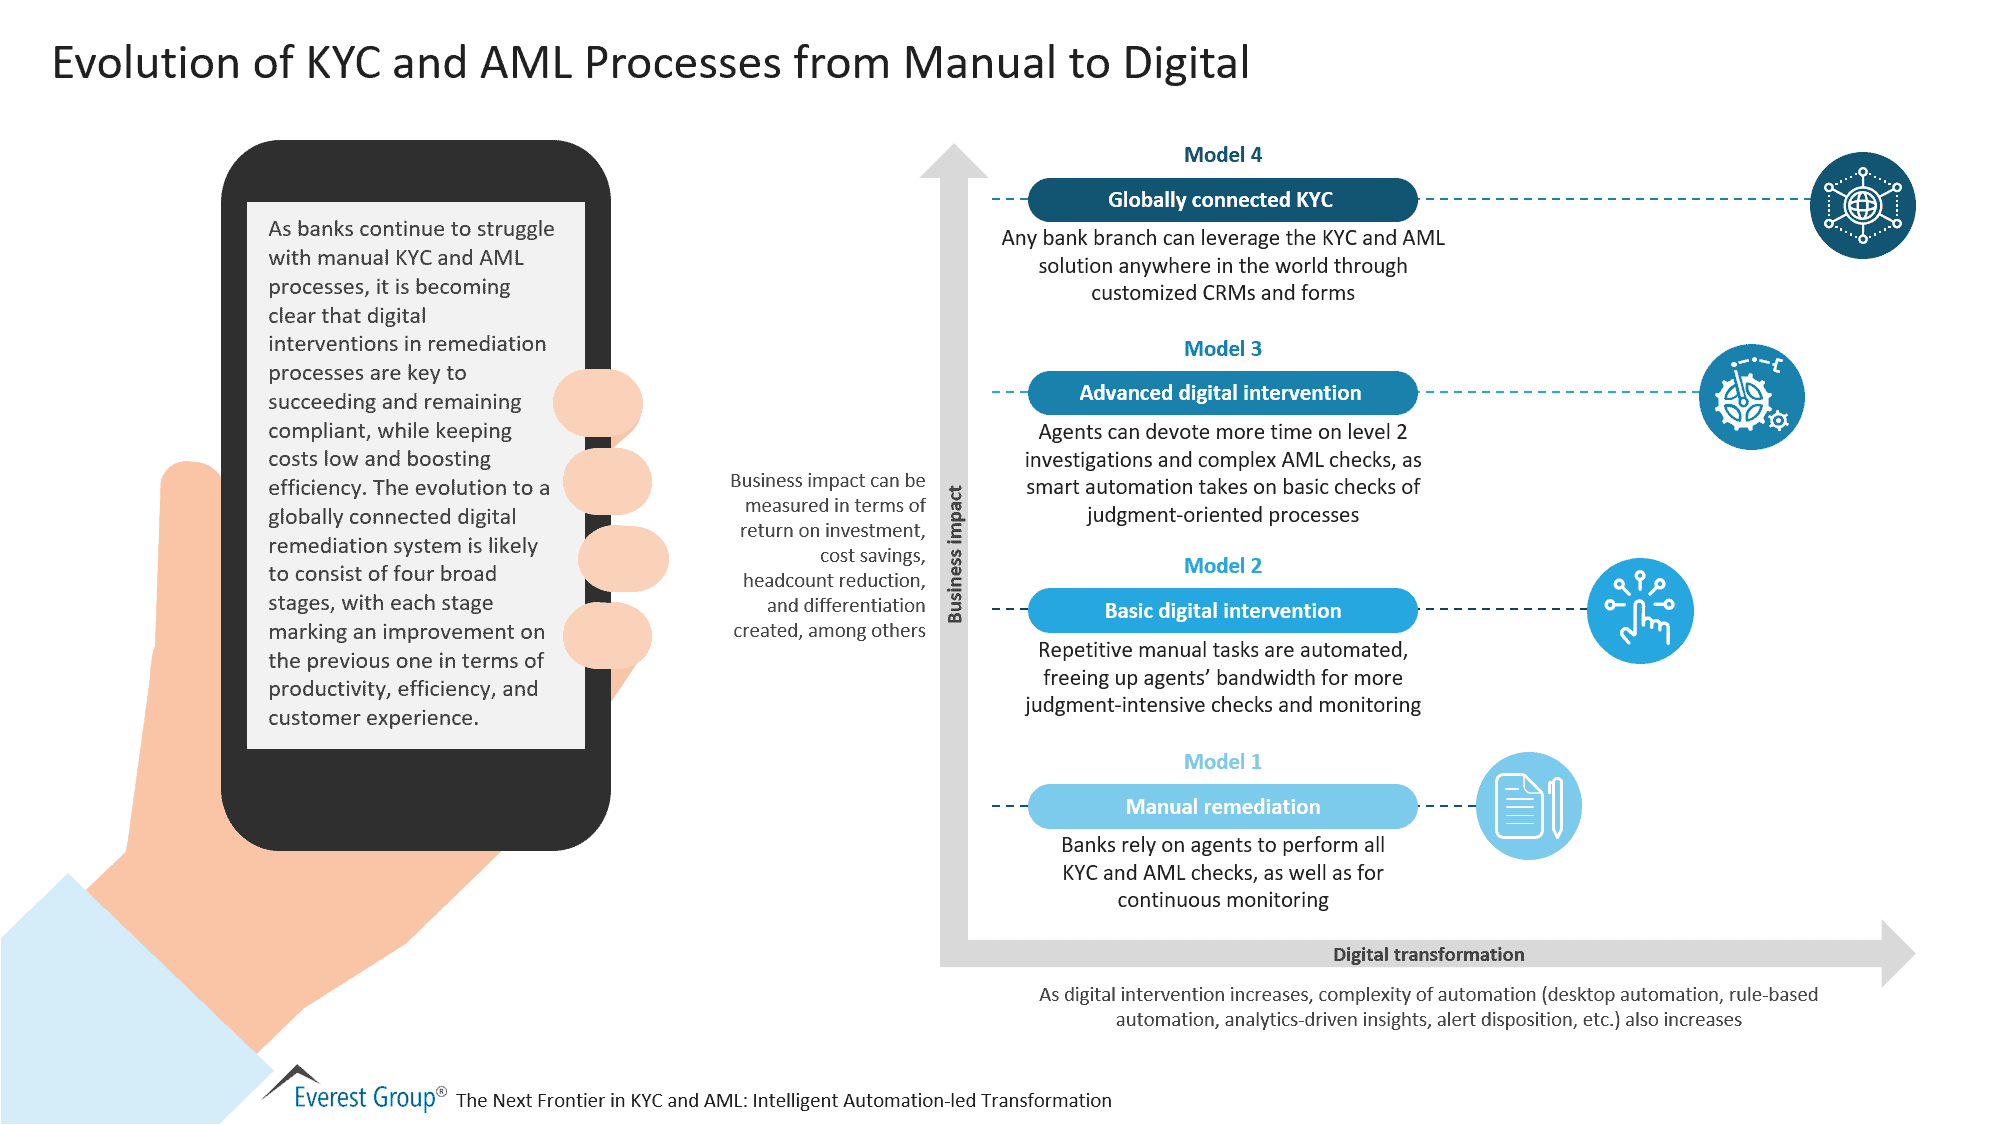 Evolution of KYC and AML Processes from Manual to Digital